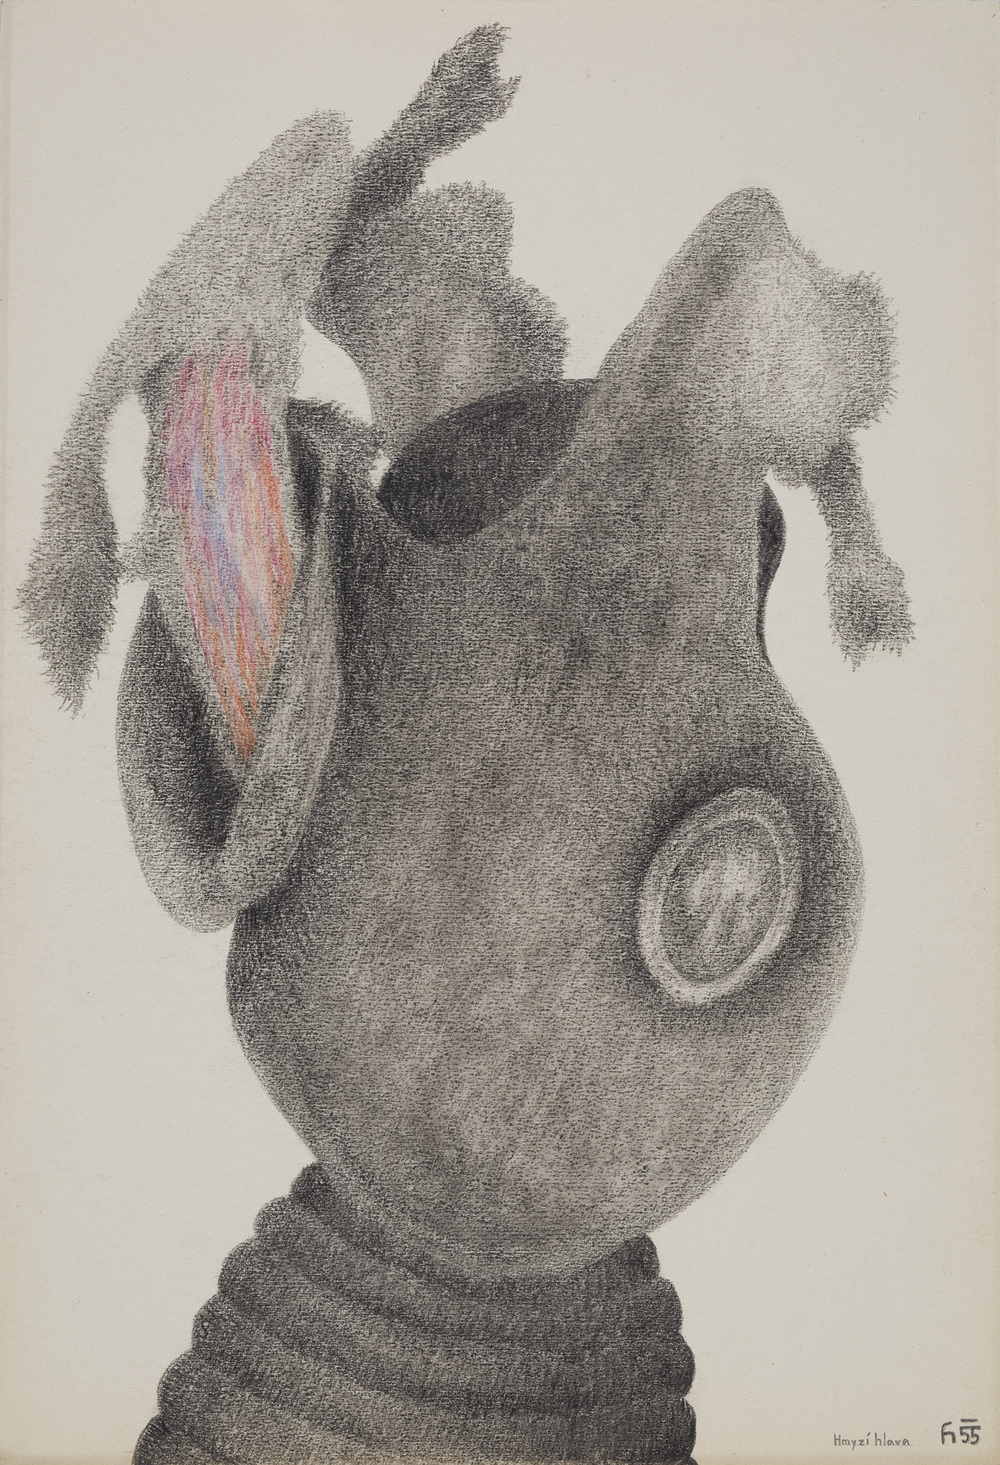 Karel Havlícek - Insects Head, 1955